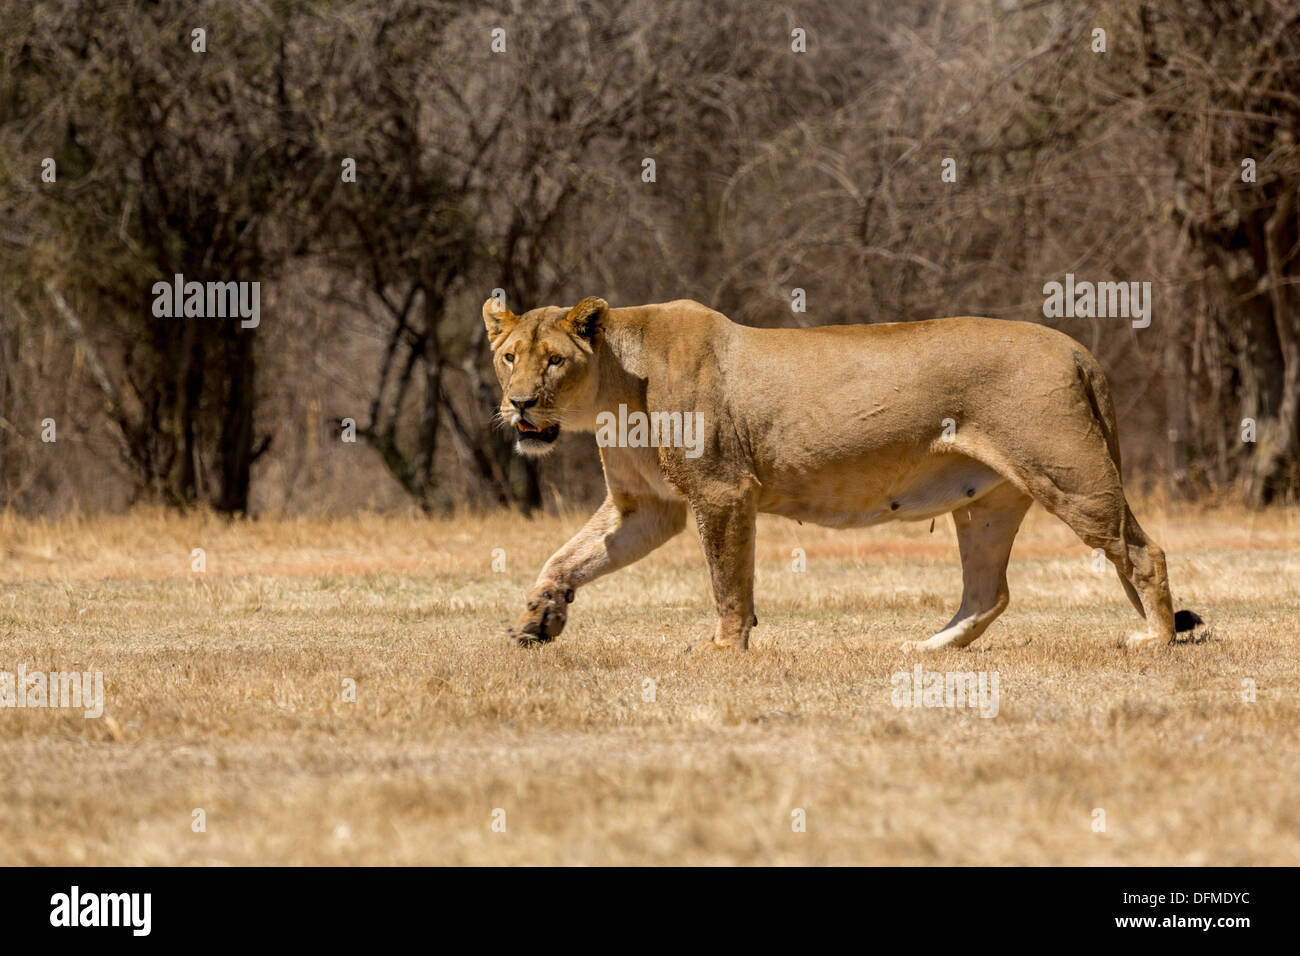 A lioness strolling around in the dry savannah lands of at a national park in South Africa - Stock Image